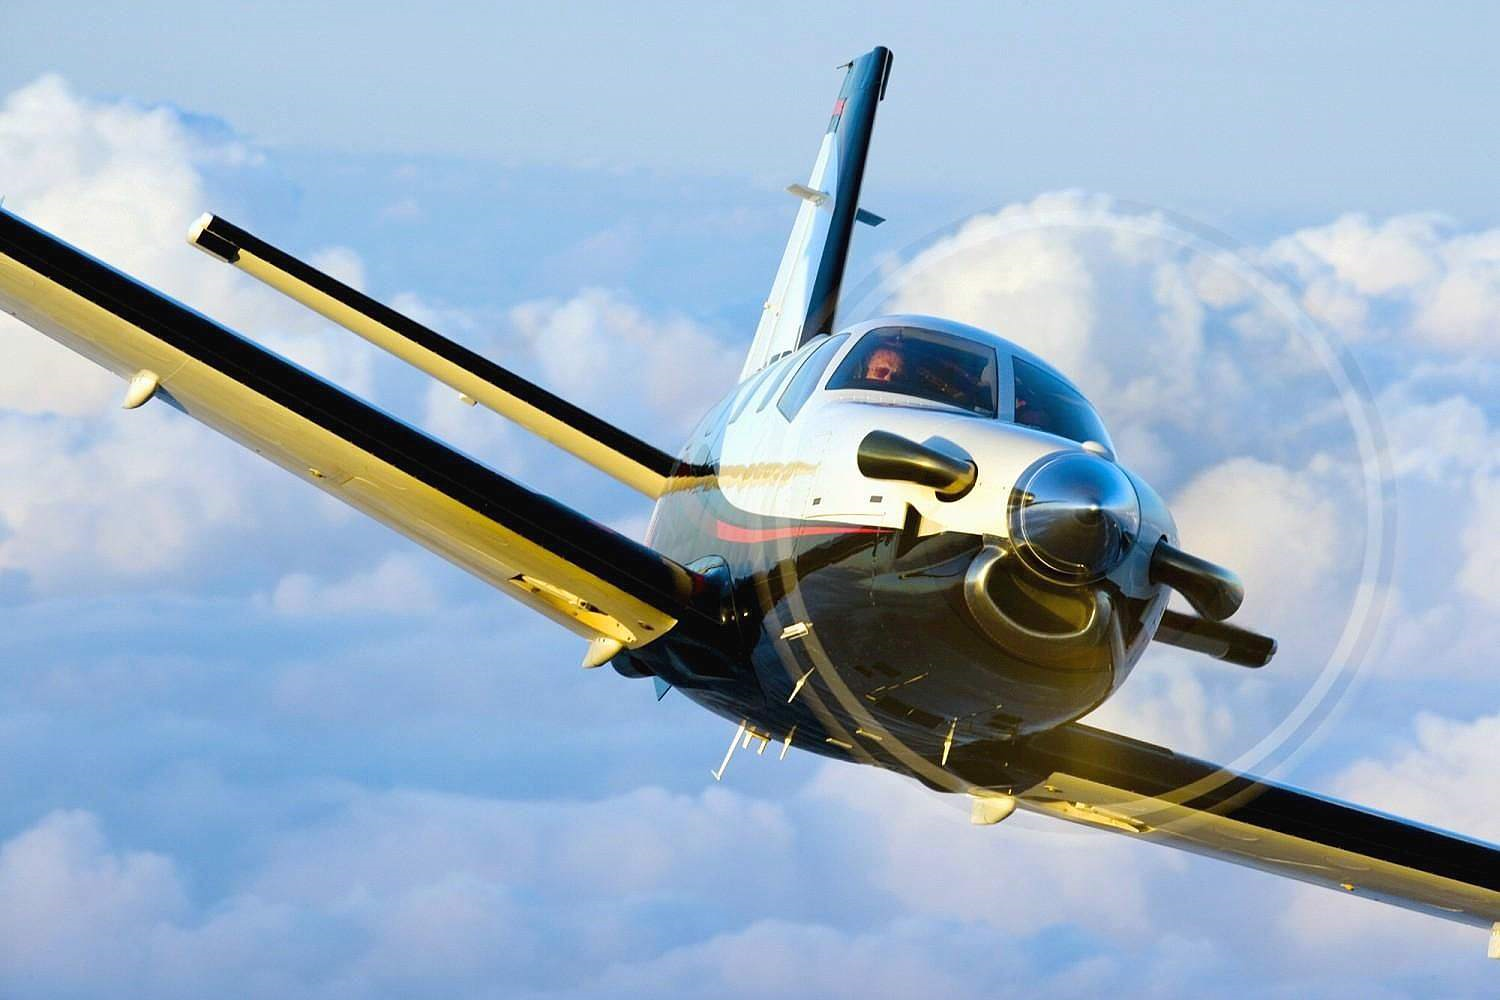 The Daher TBM-850 is the fastest single engine turbo prop in the world